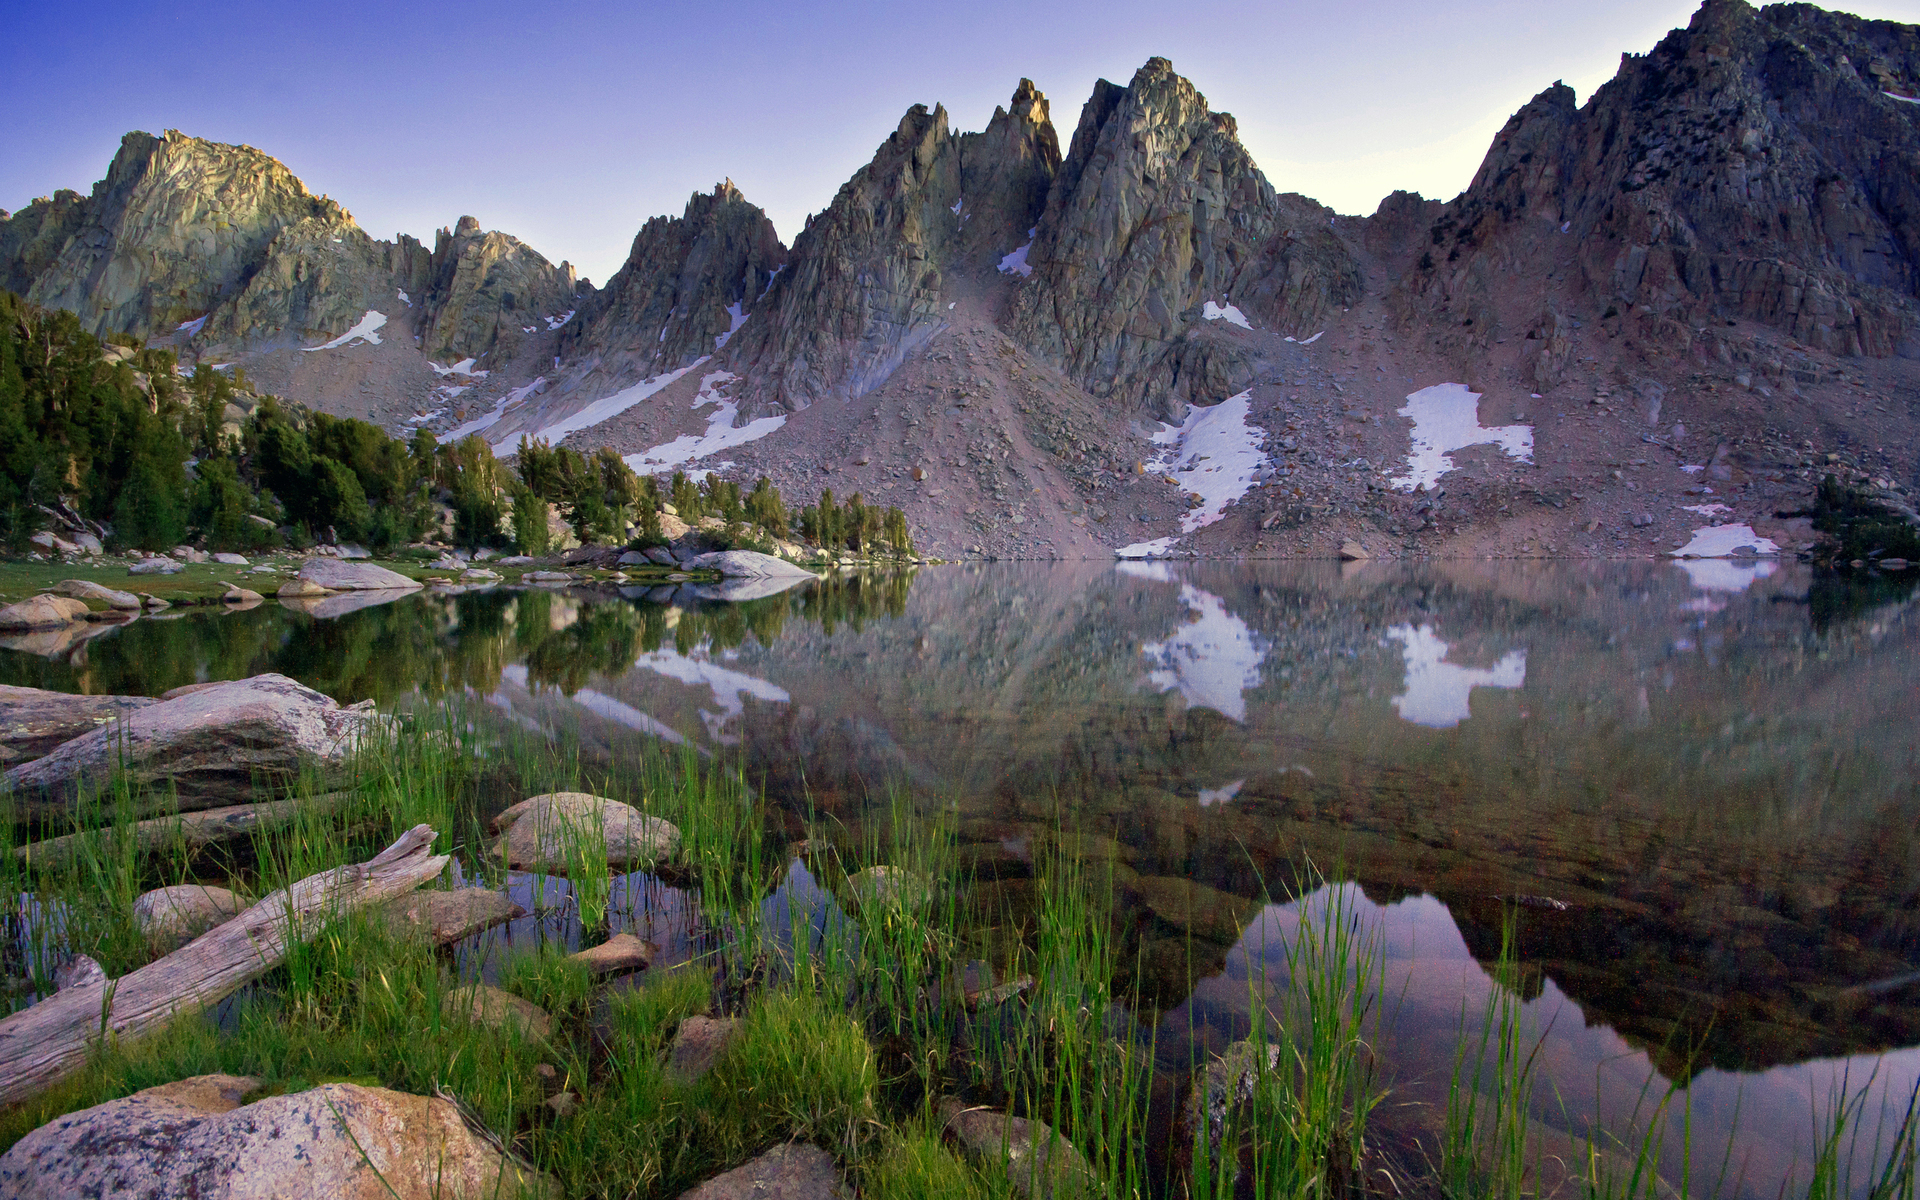 33363 download wallpaper Landscape, Mountains, Lakes screensavers and pictures for free